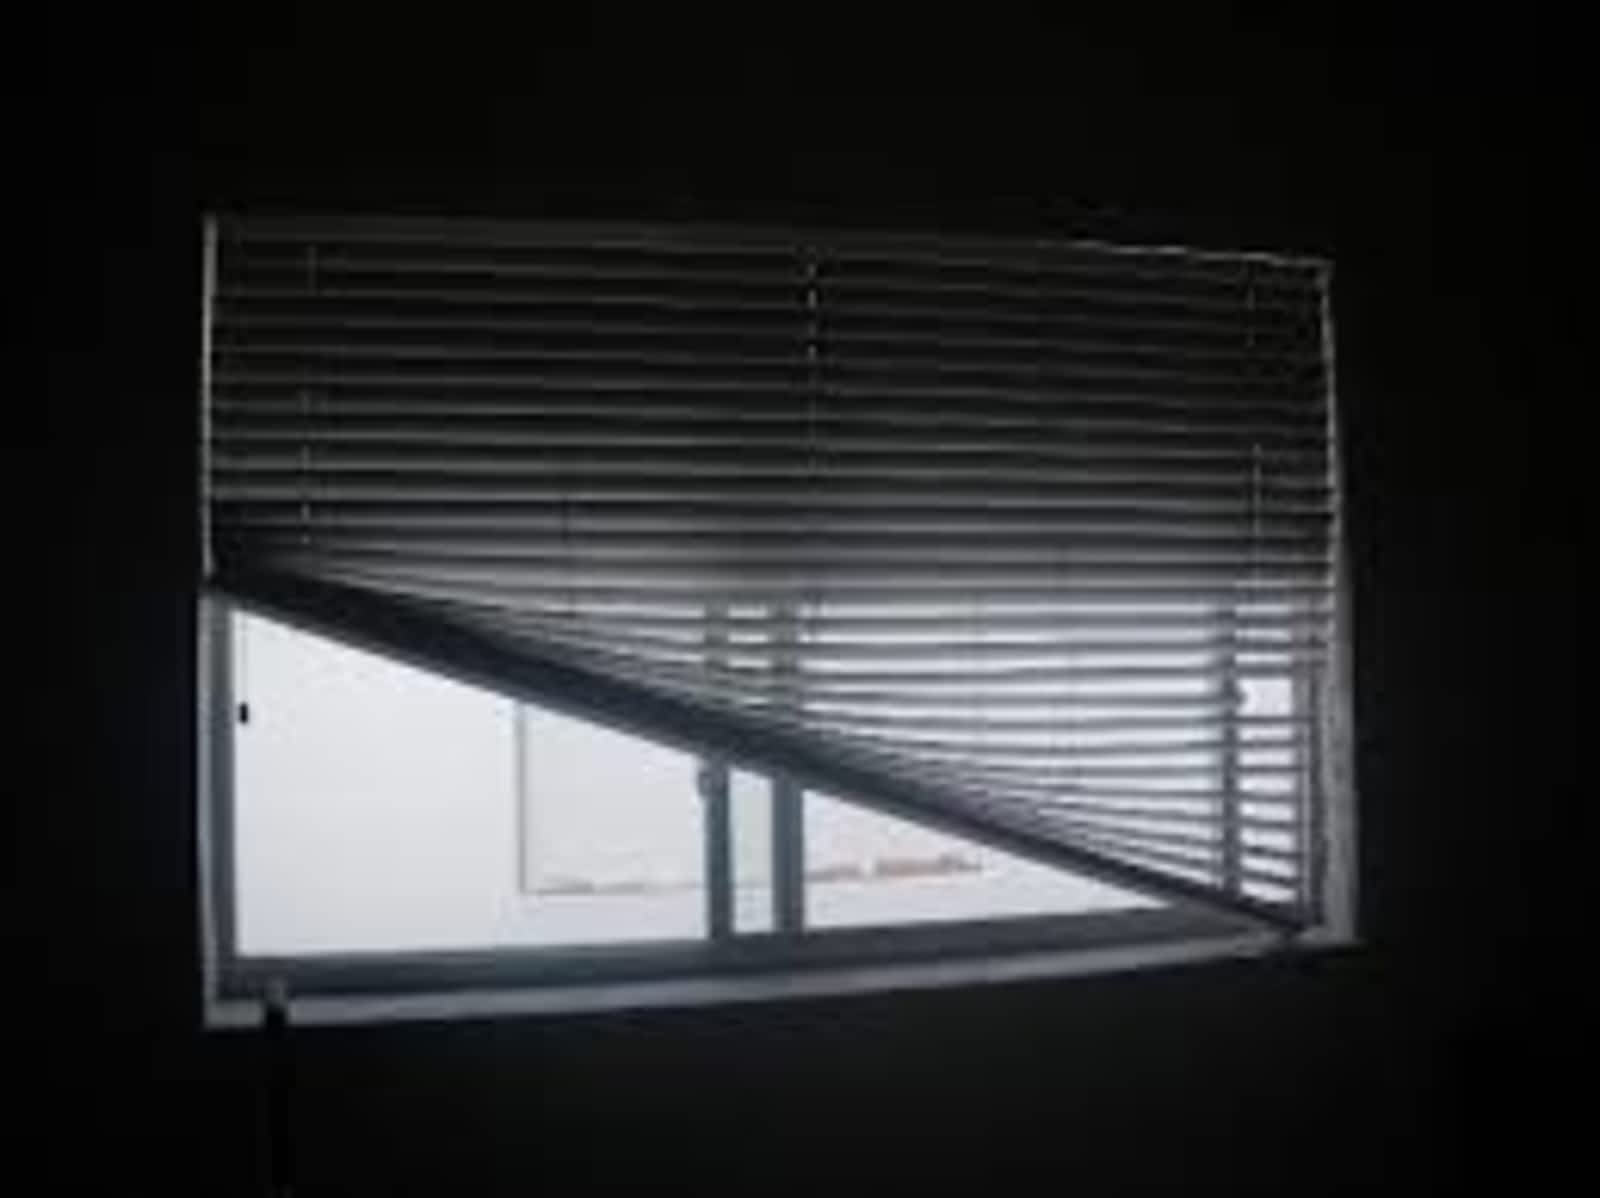 blinds a request banner s jim blind image quote repairs perth cleaning